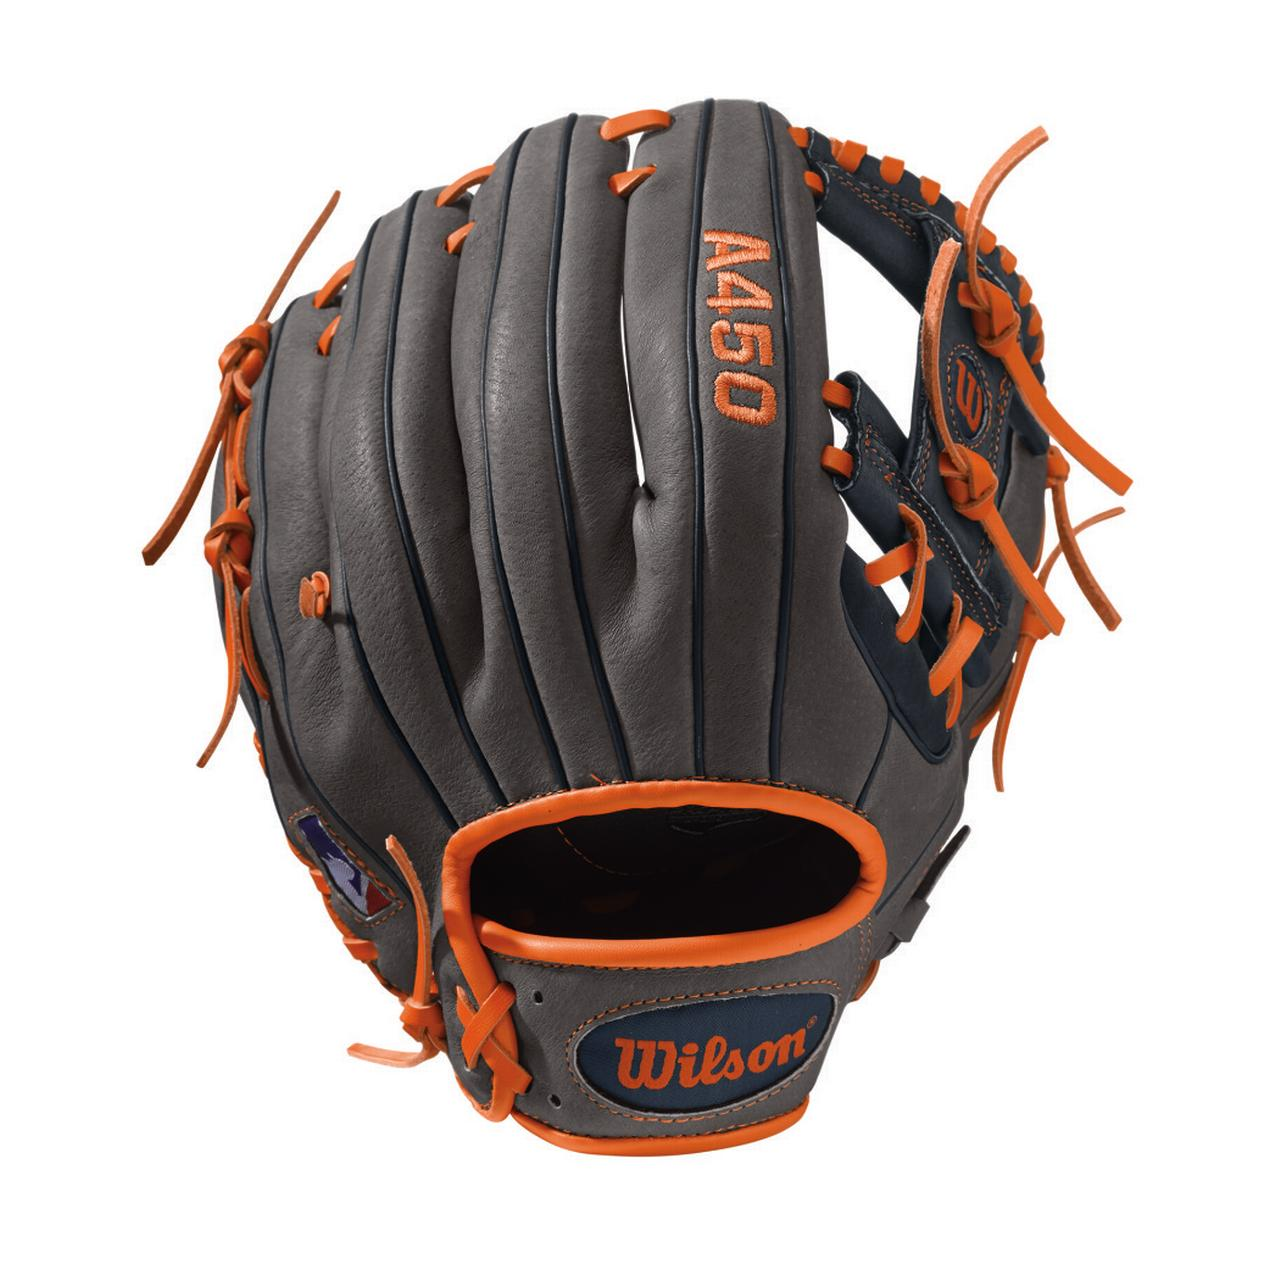 Wilson Sporting Goods A450 Advisory Staff Correa All-Position Baseball Glove, 11.5""